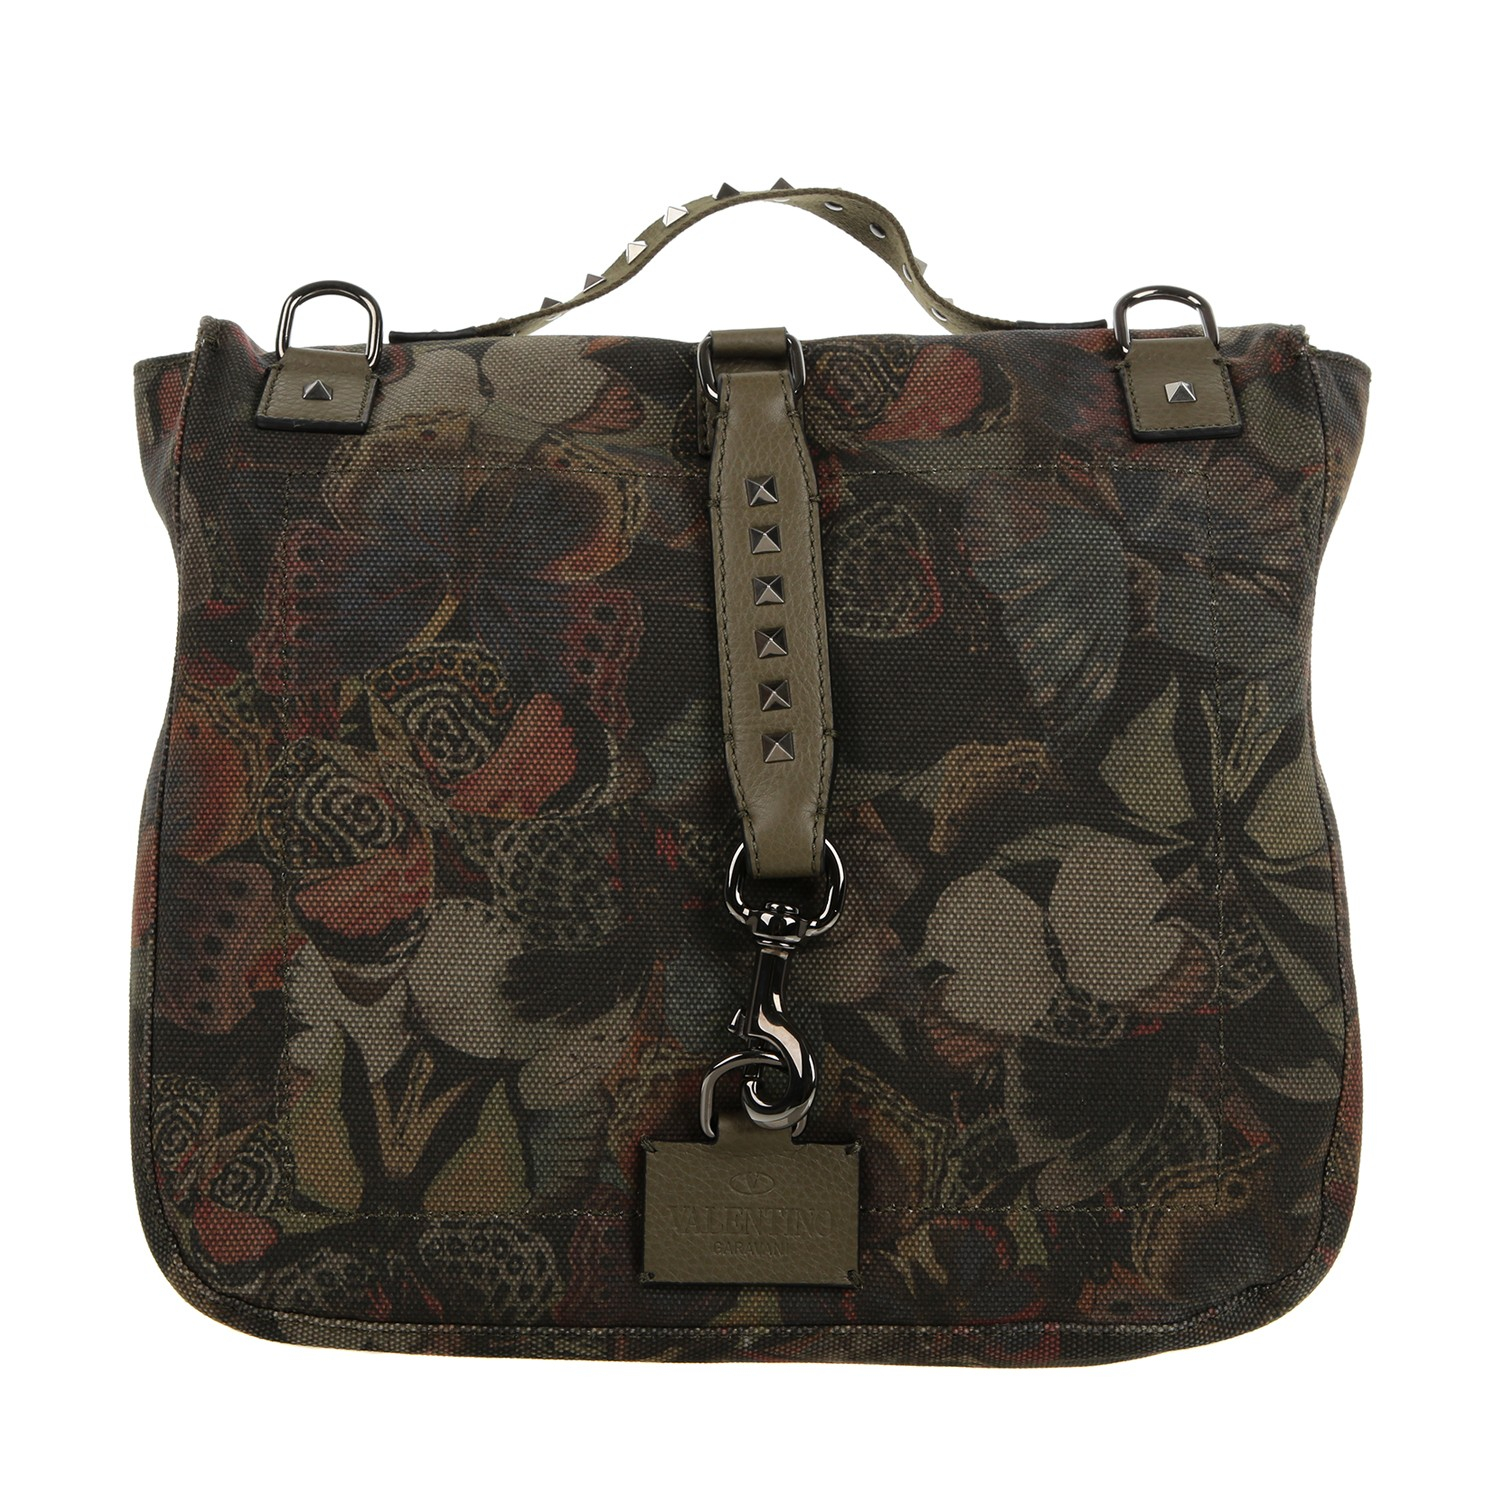 00f8d0a71694 givenchy duo bag backpack - Ecosia